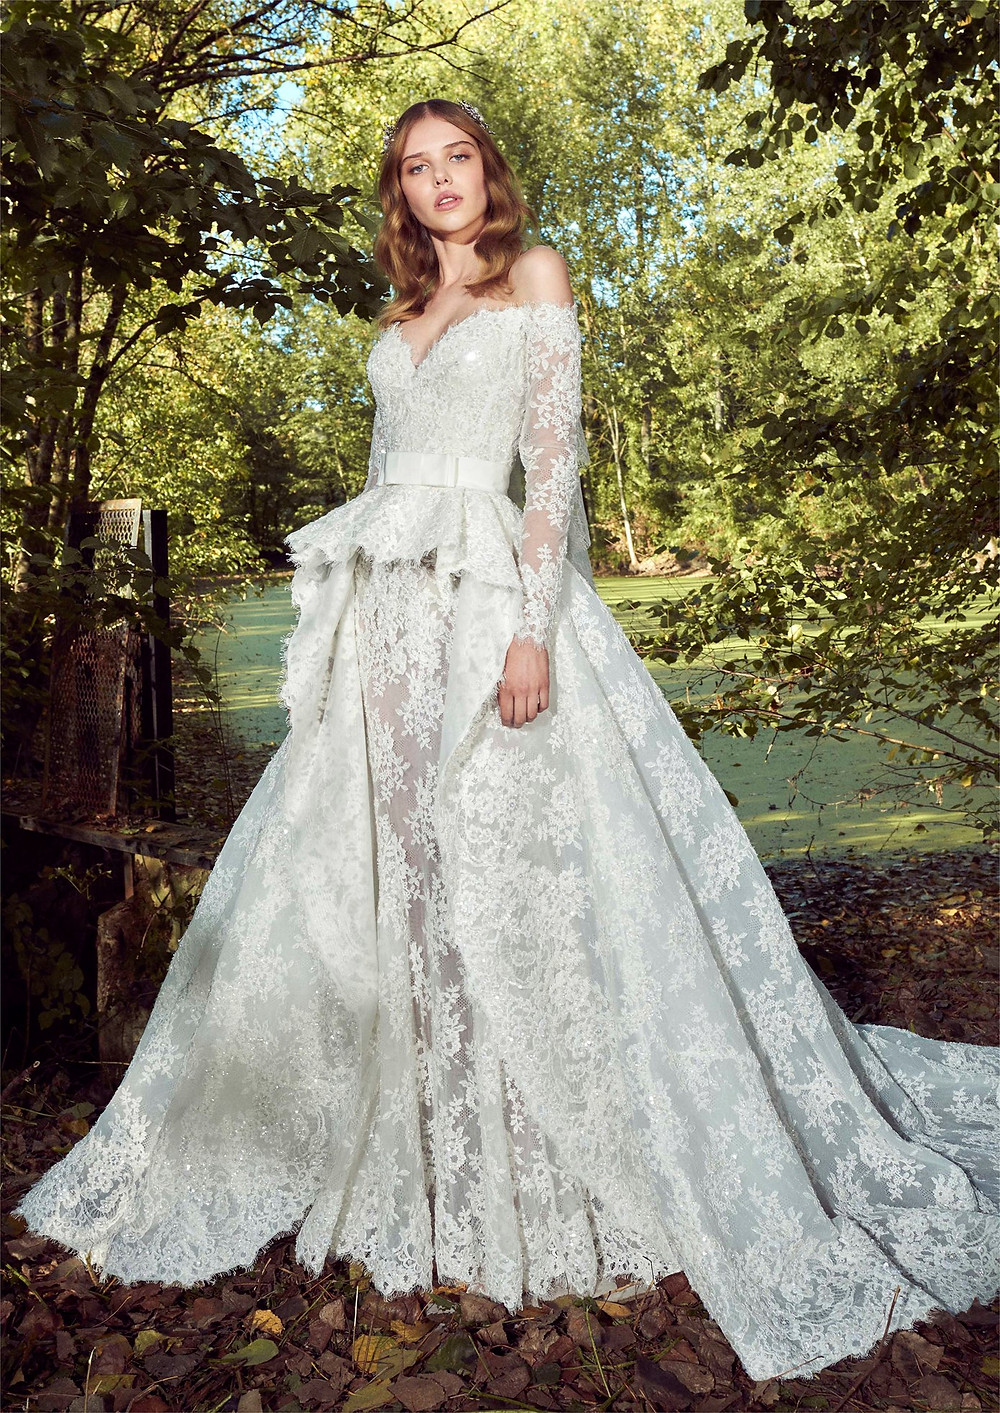 An off the shoulder, lace, ball gown wedding dress, with detachable skirt and long sleeves